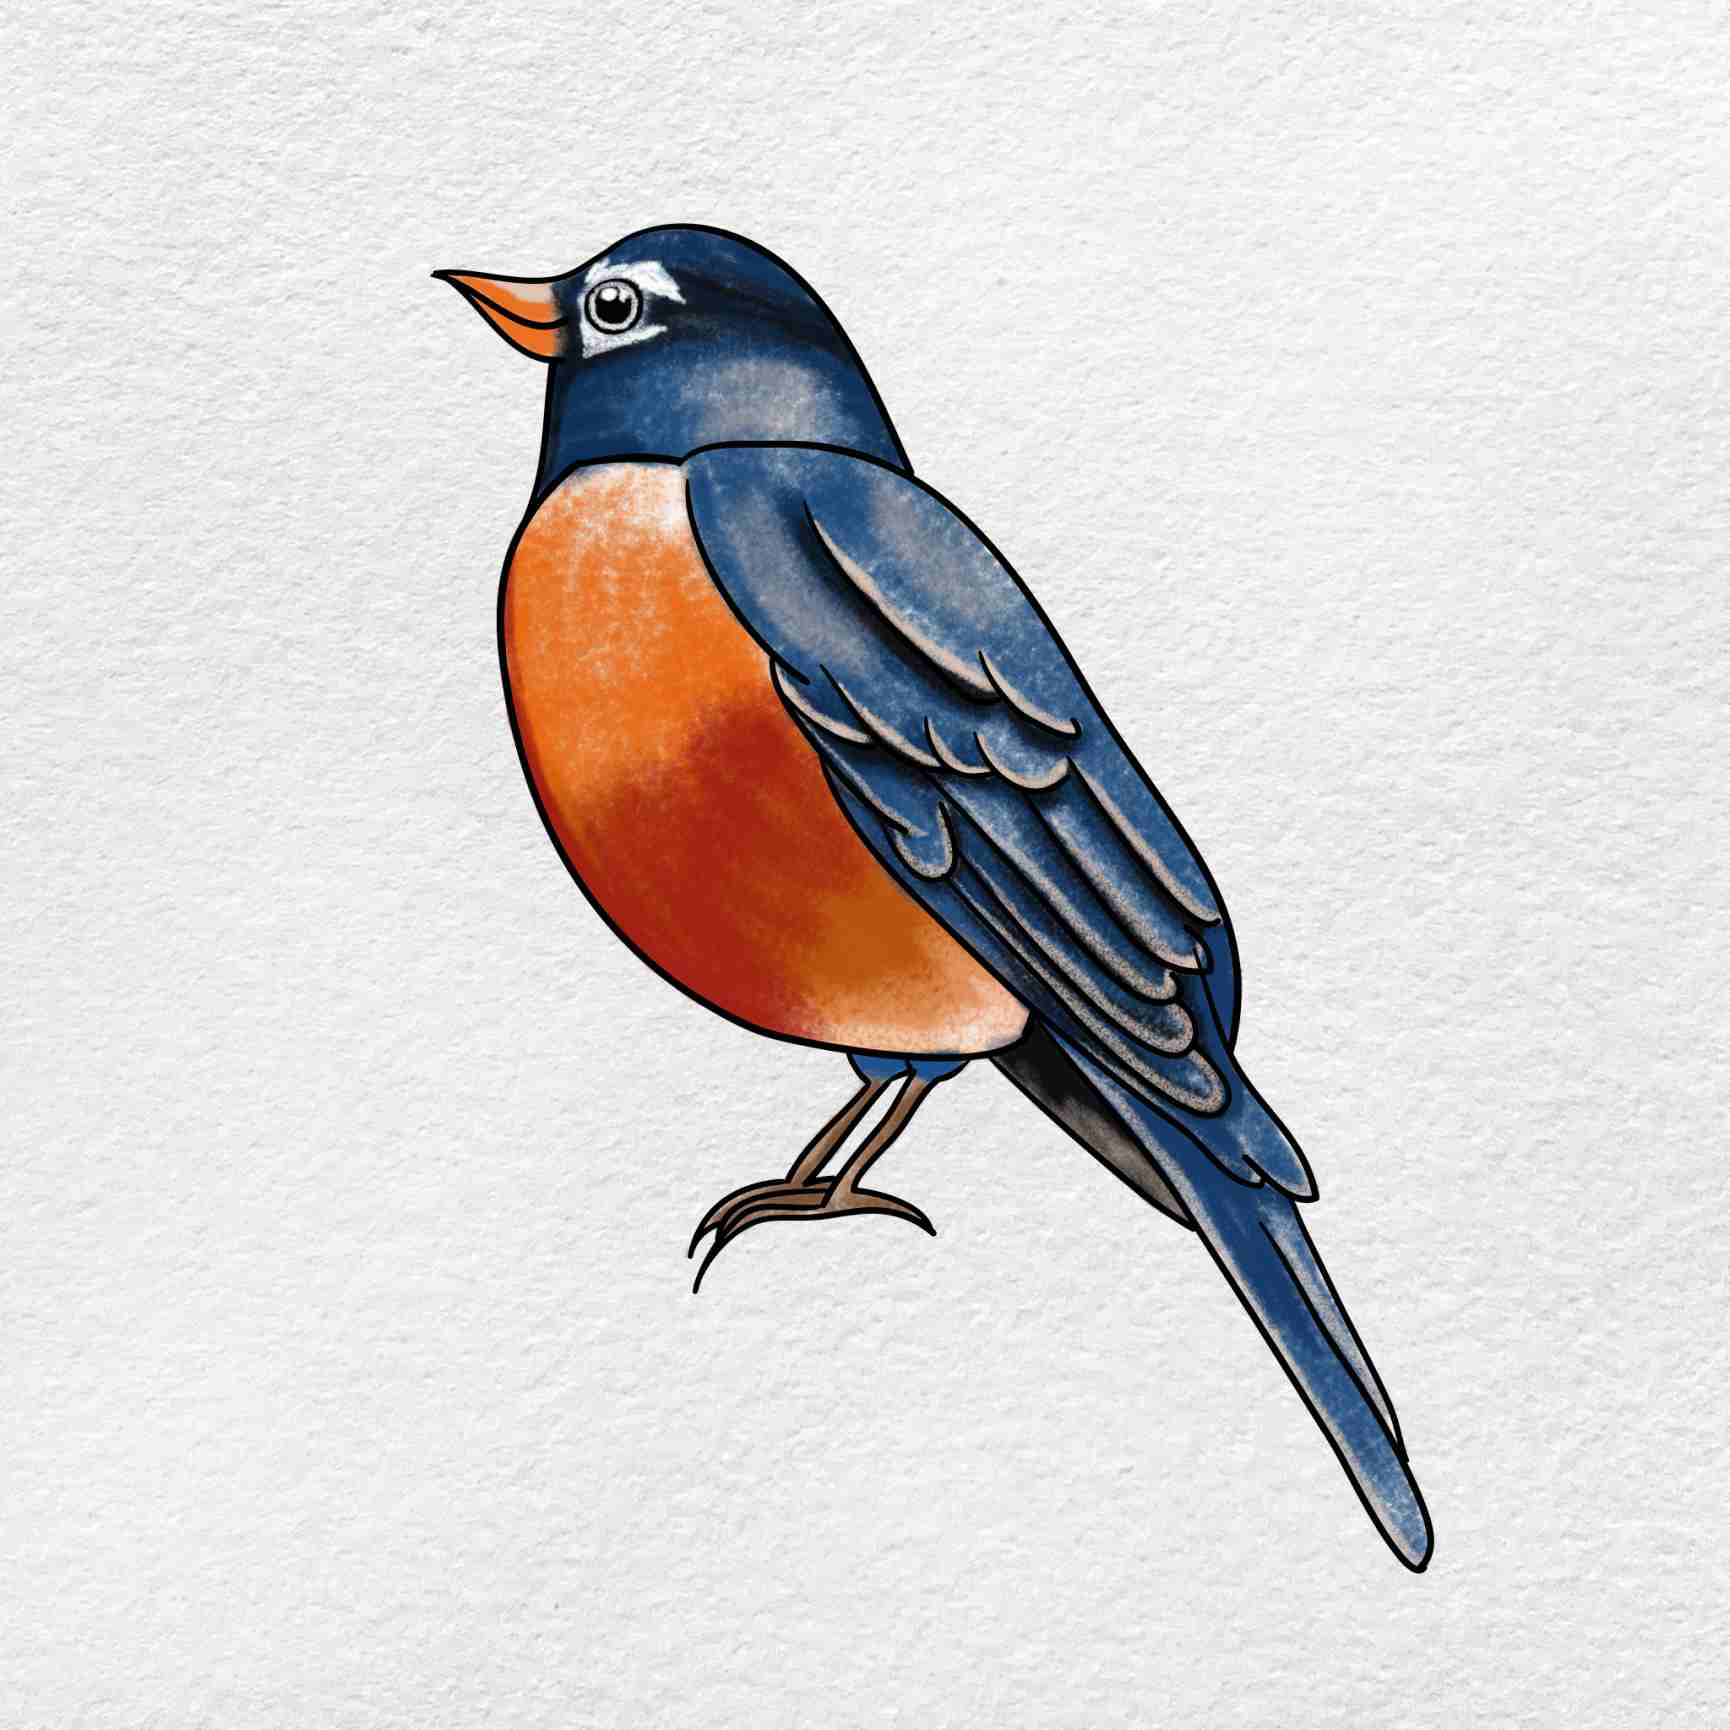 How To Draw A Robin: Step 6